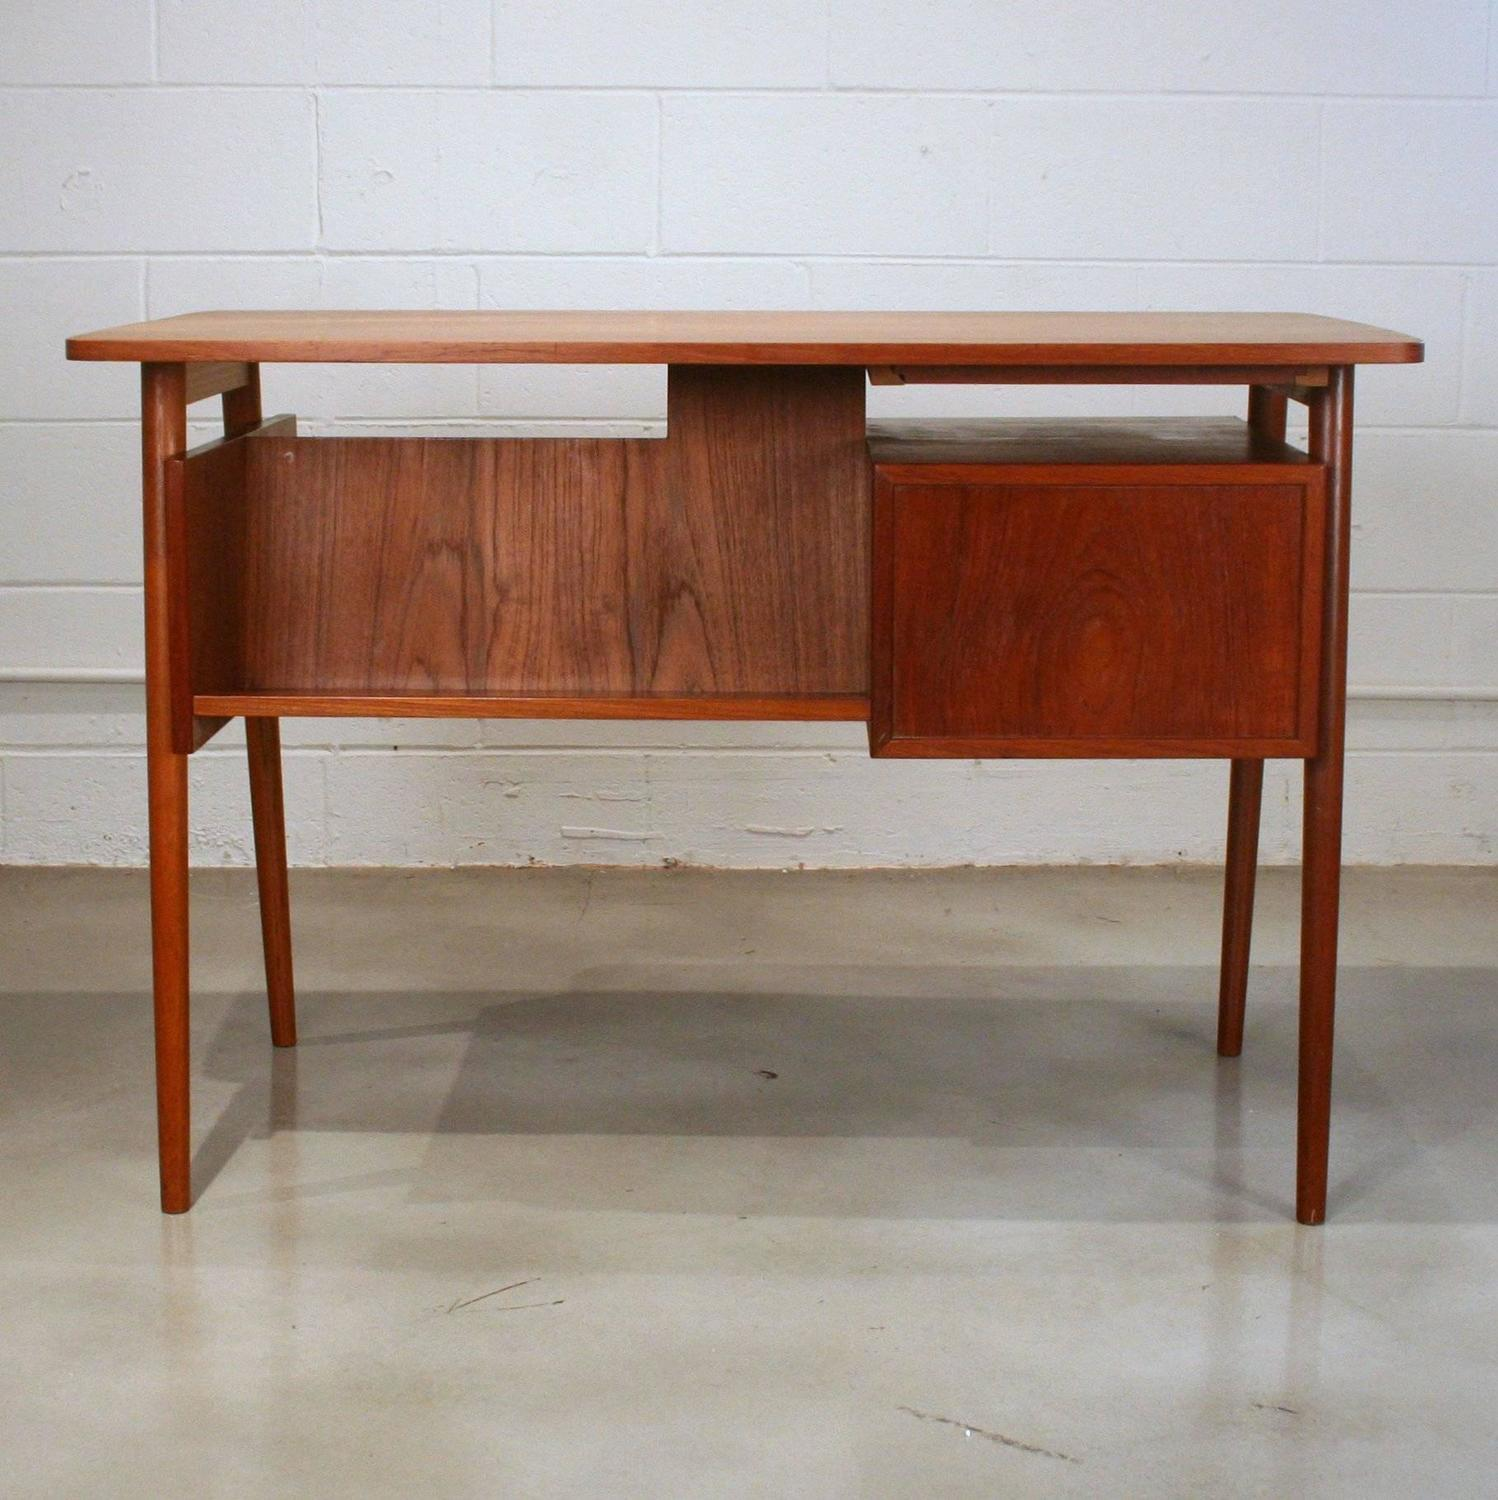 #AA5021 Vintage Danish Teak Writing Desk At 1stdibs with 1498x1500 px of Best Vintage Writing Desks 15001498 image @ avoidforclosure.info